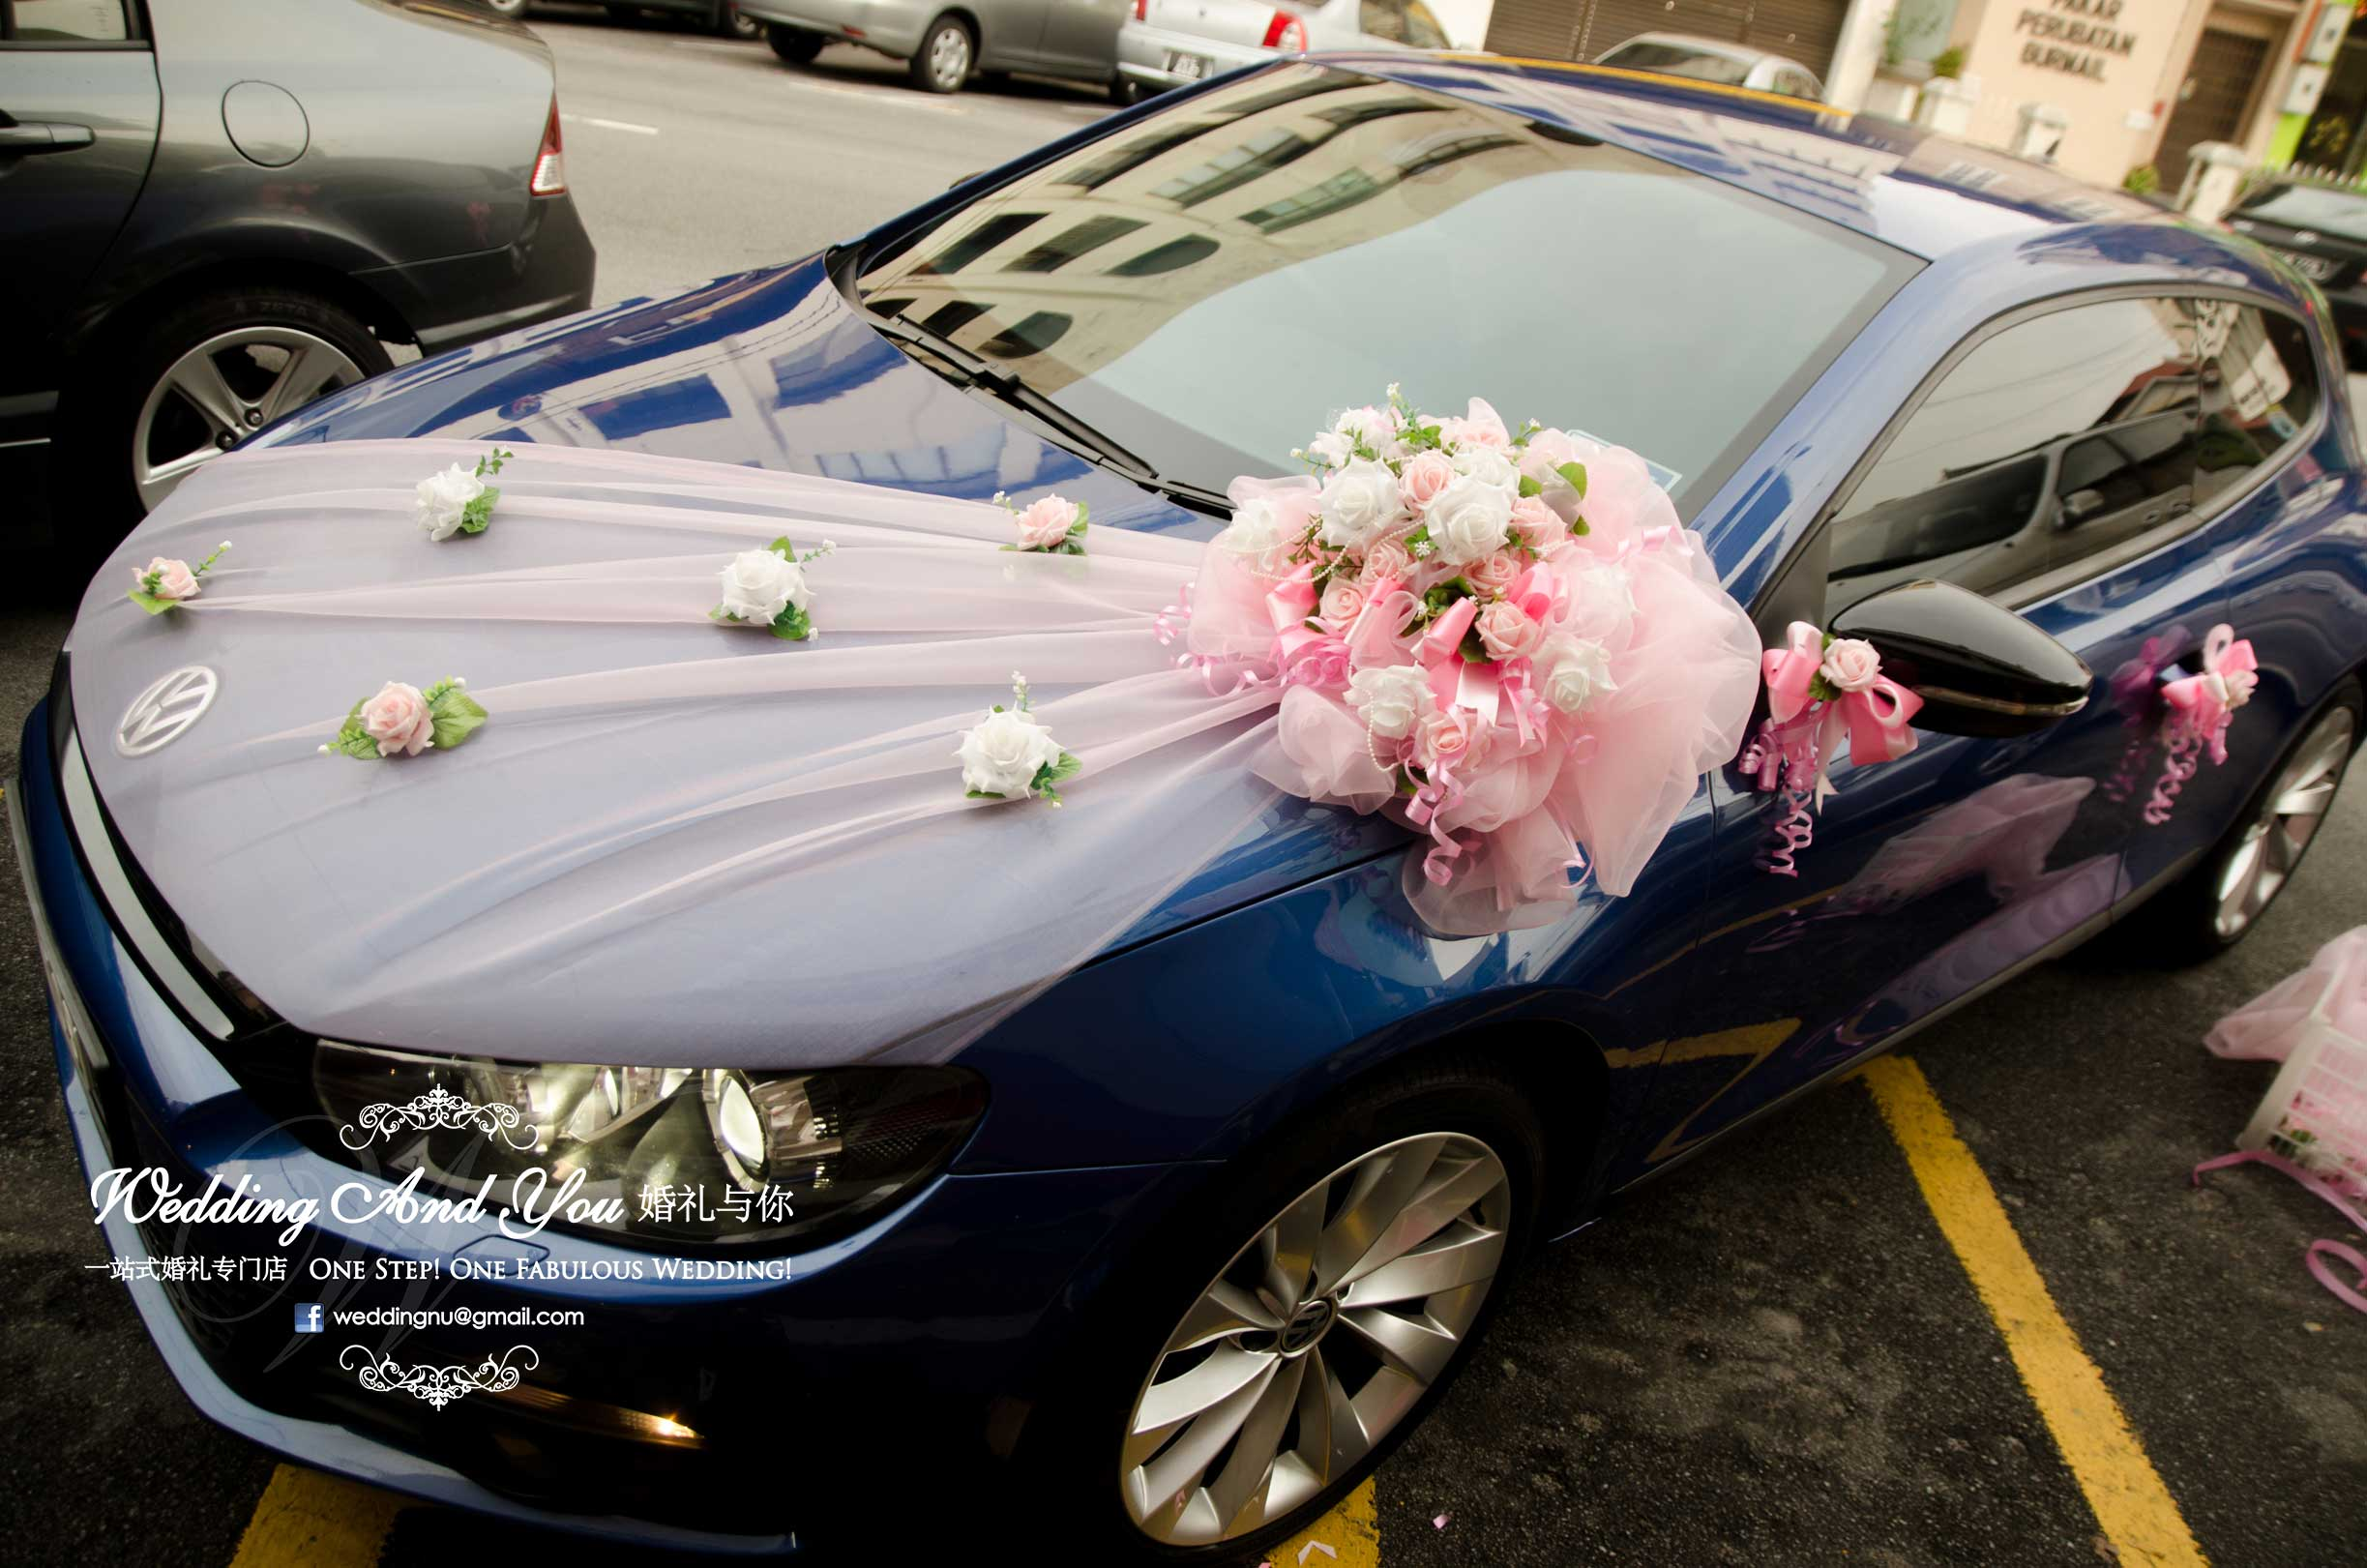 Wedding car decoration car wedding car decoration junglespirit Images